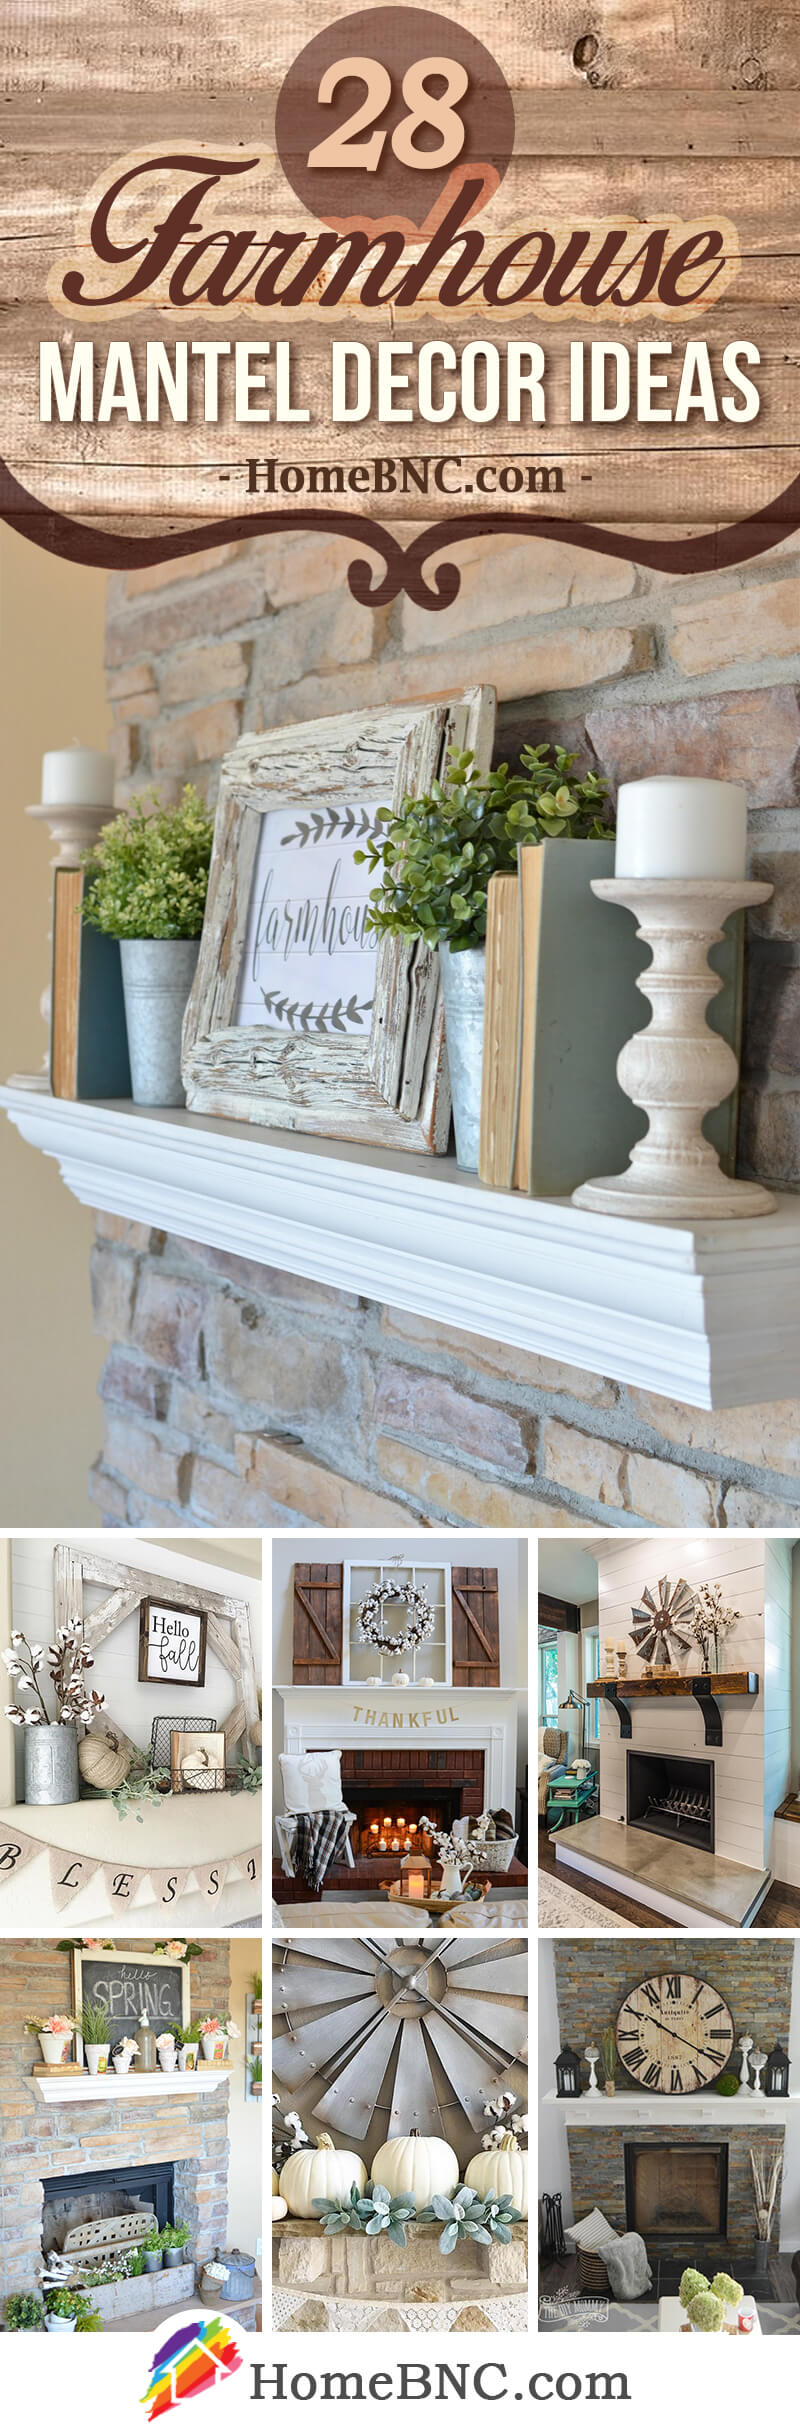 28 Best Farmhouse Mantel Decor Ideas And Designs For 2019